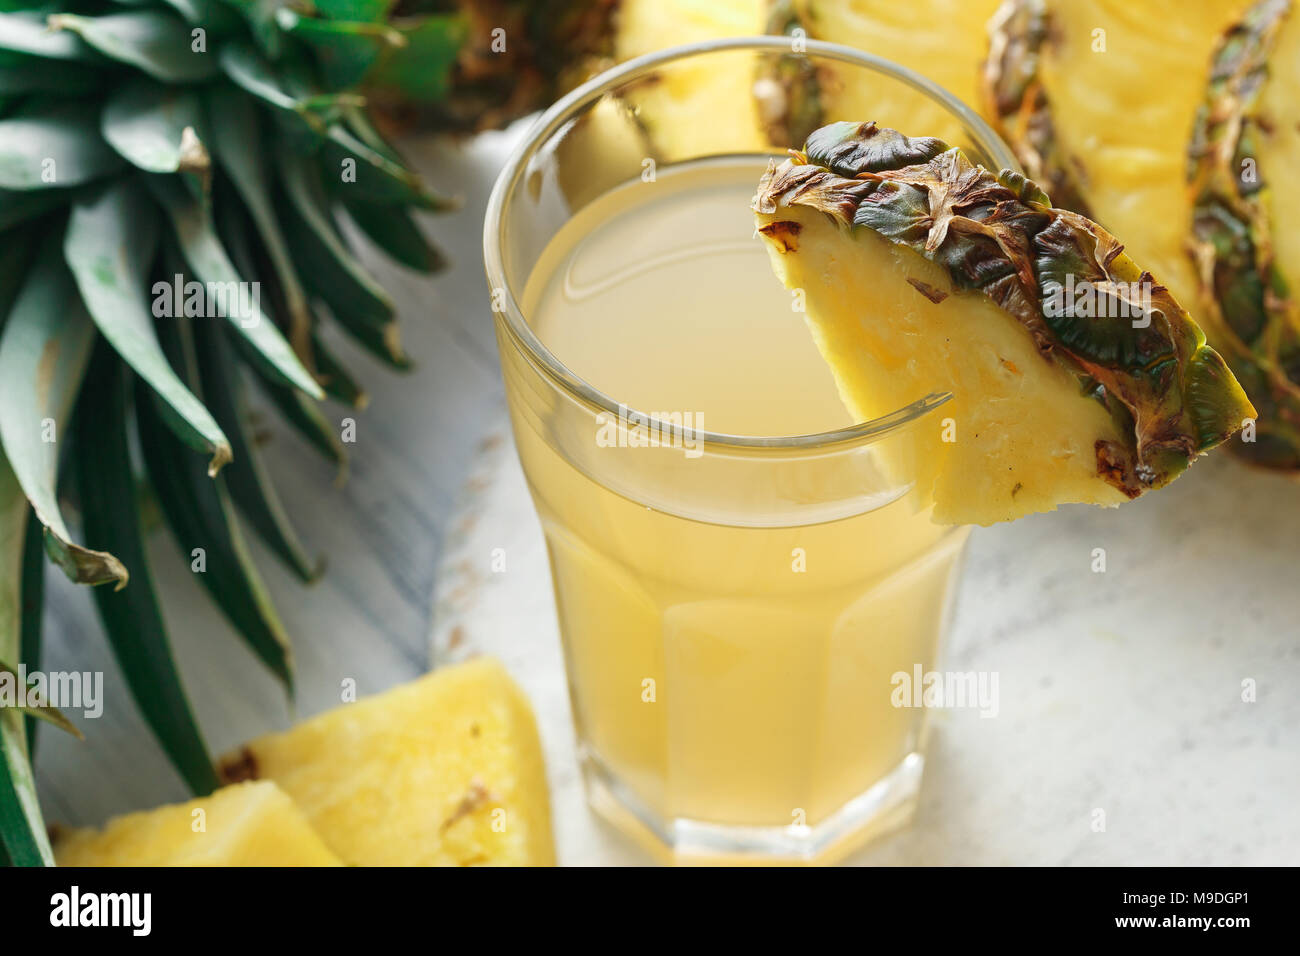 Pineapple freshly squeezed juice in glass on a wooden table over grey concrete background - Stock Image